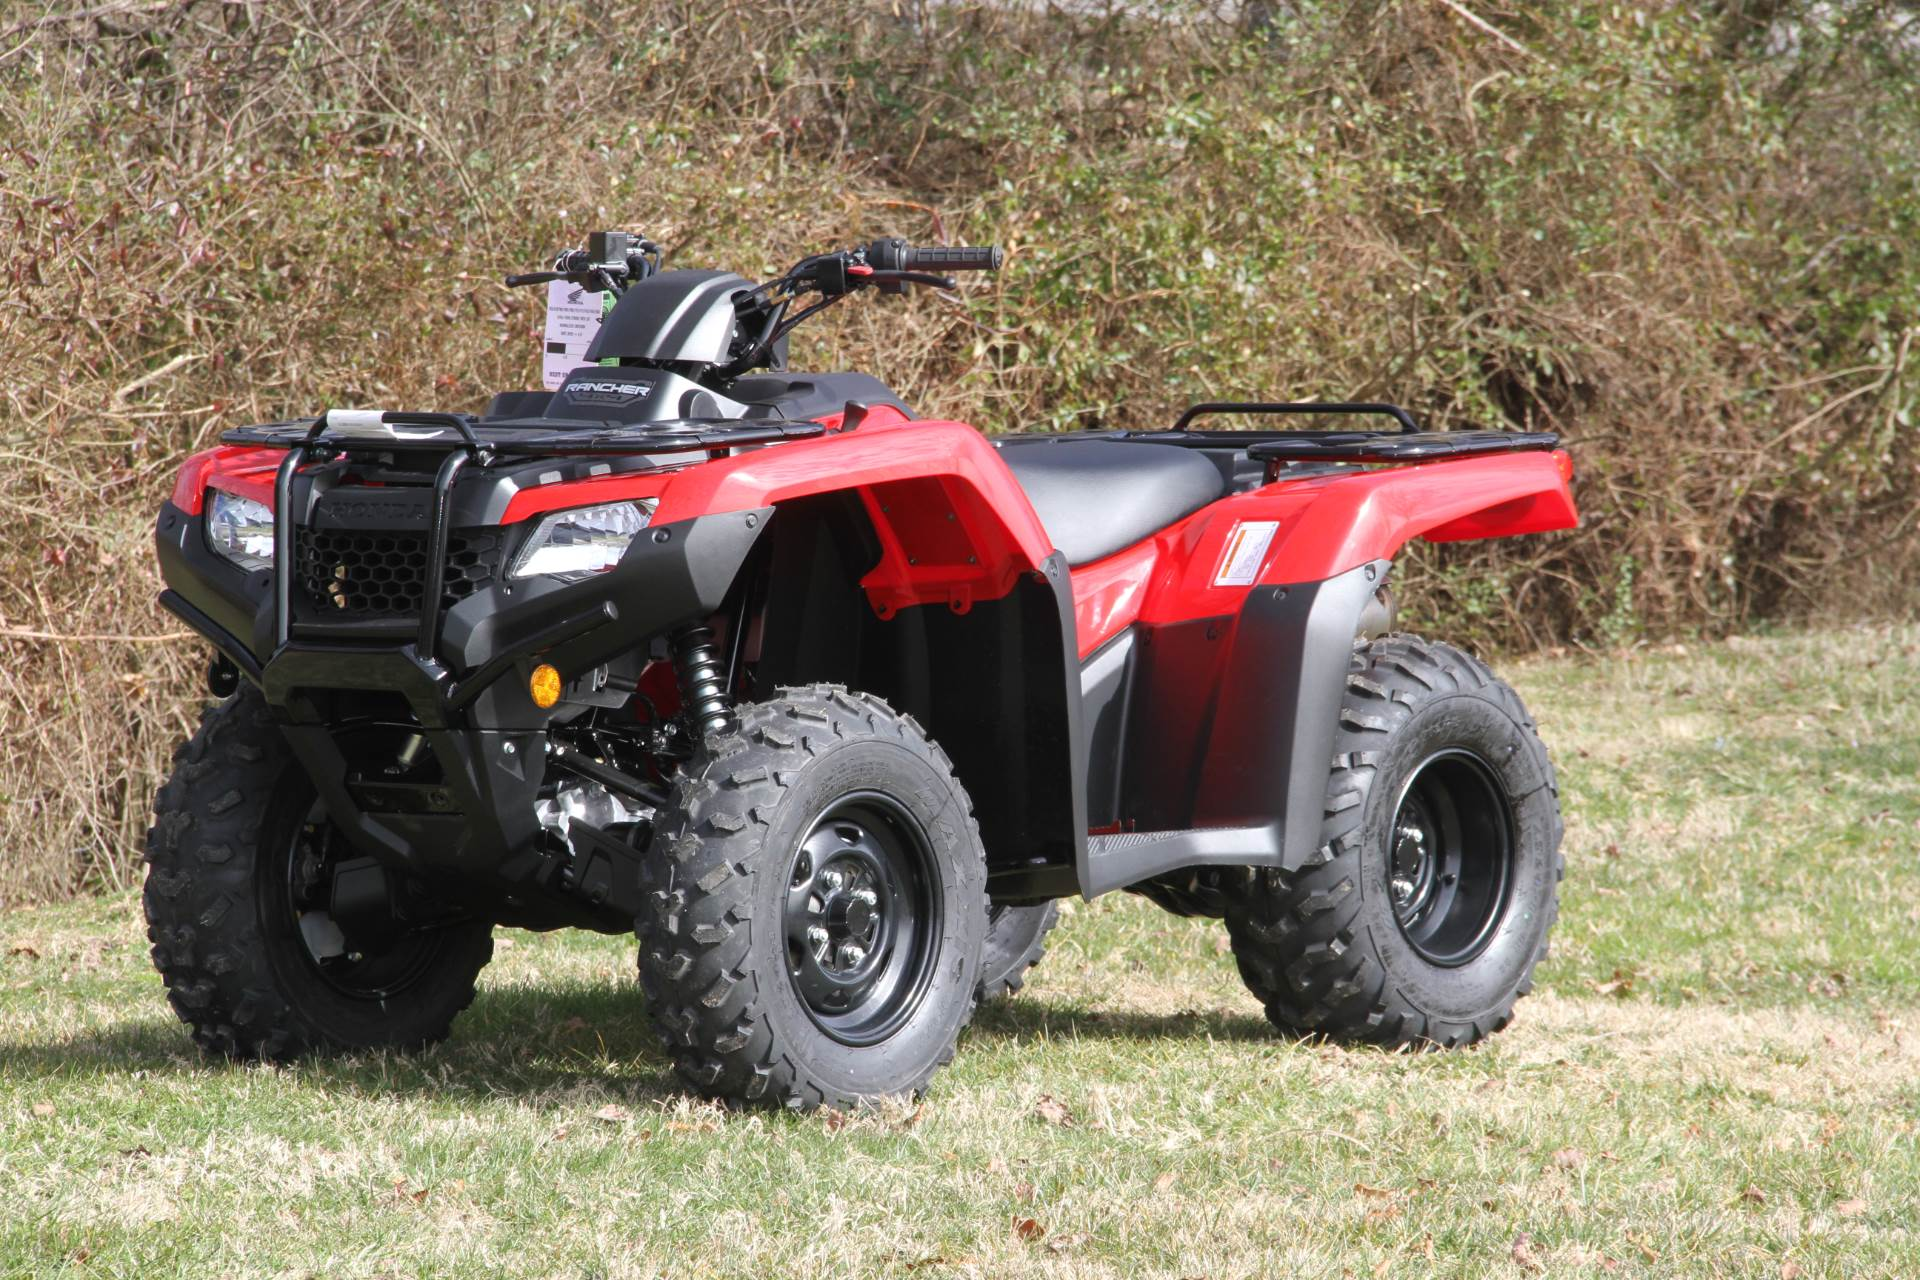 2020 Honda FourTrax Rancher 4x4 in Hendersonville, North Carolina - Photo 23